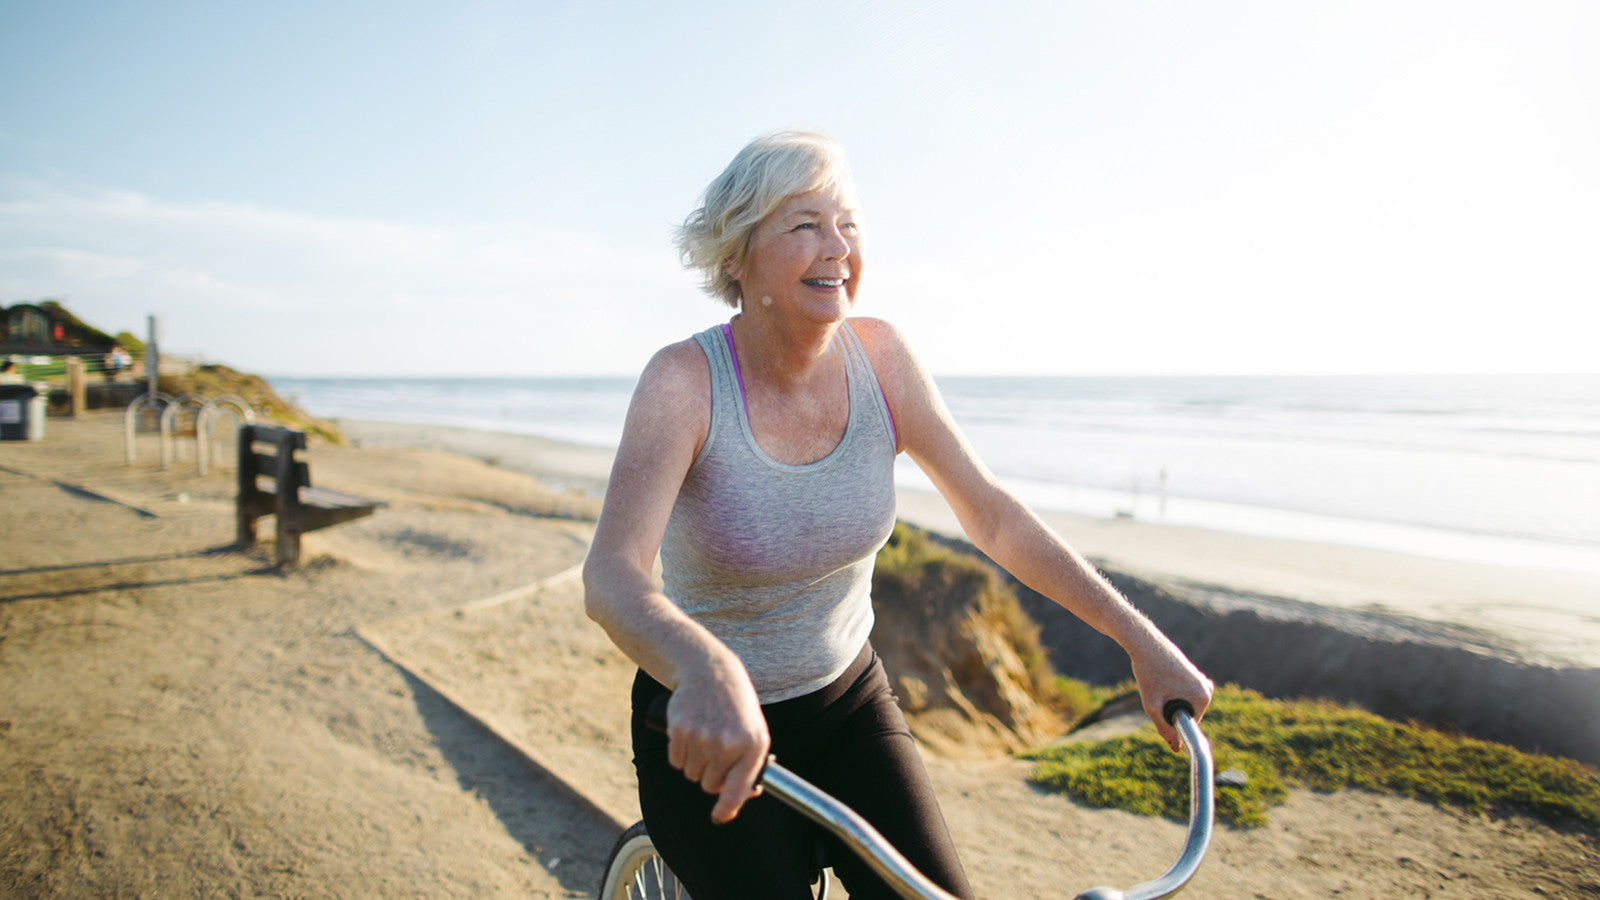 Over The Age of 50? Tips For Bike Riding